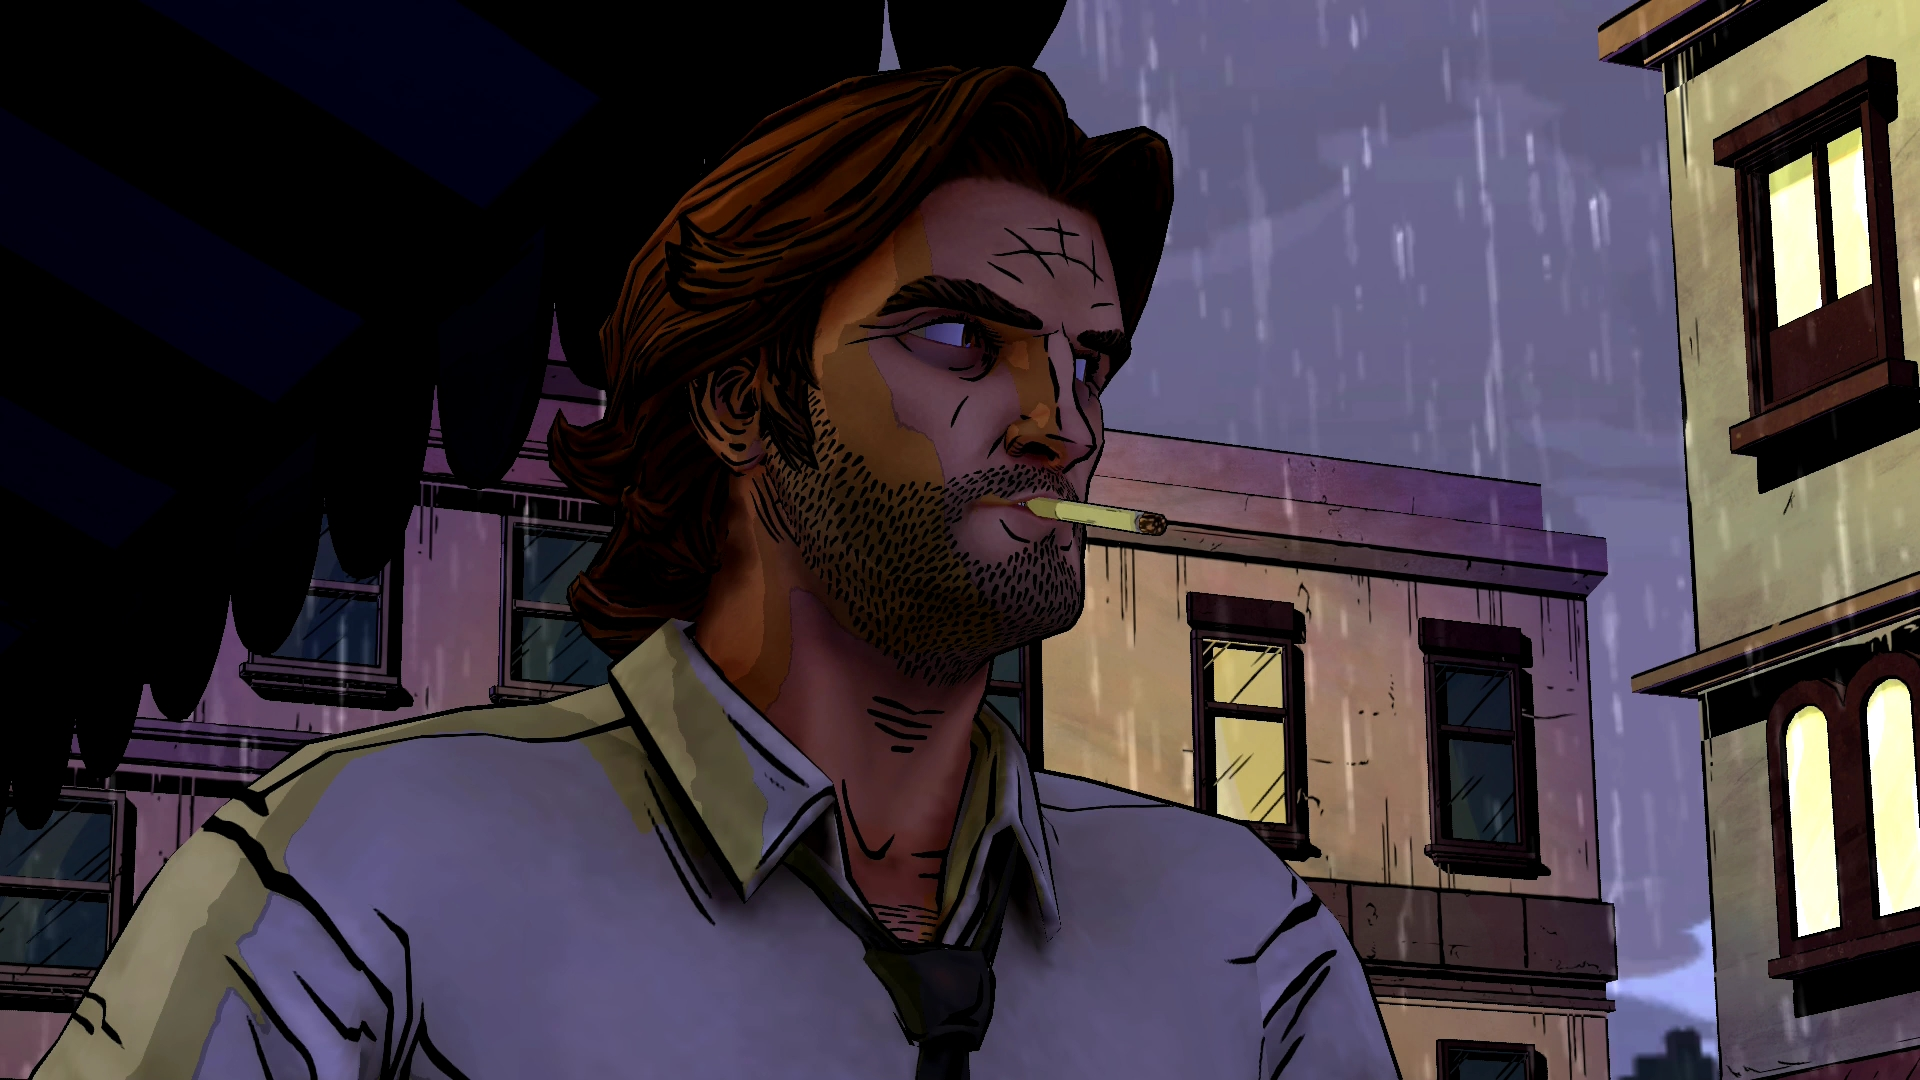 ?? ???? The Wolf Among Us: Episode 5 - Cry Wolf